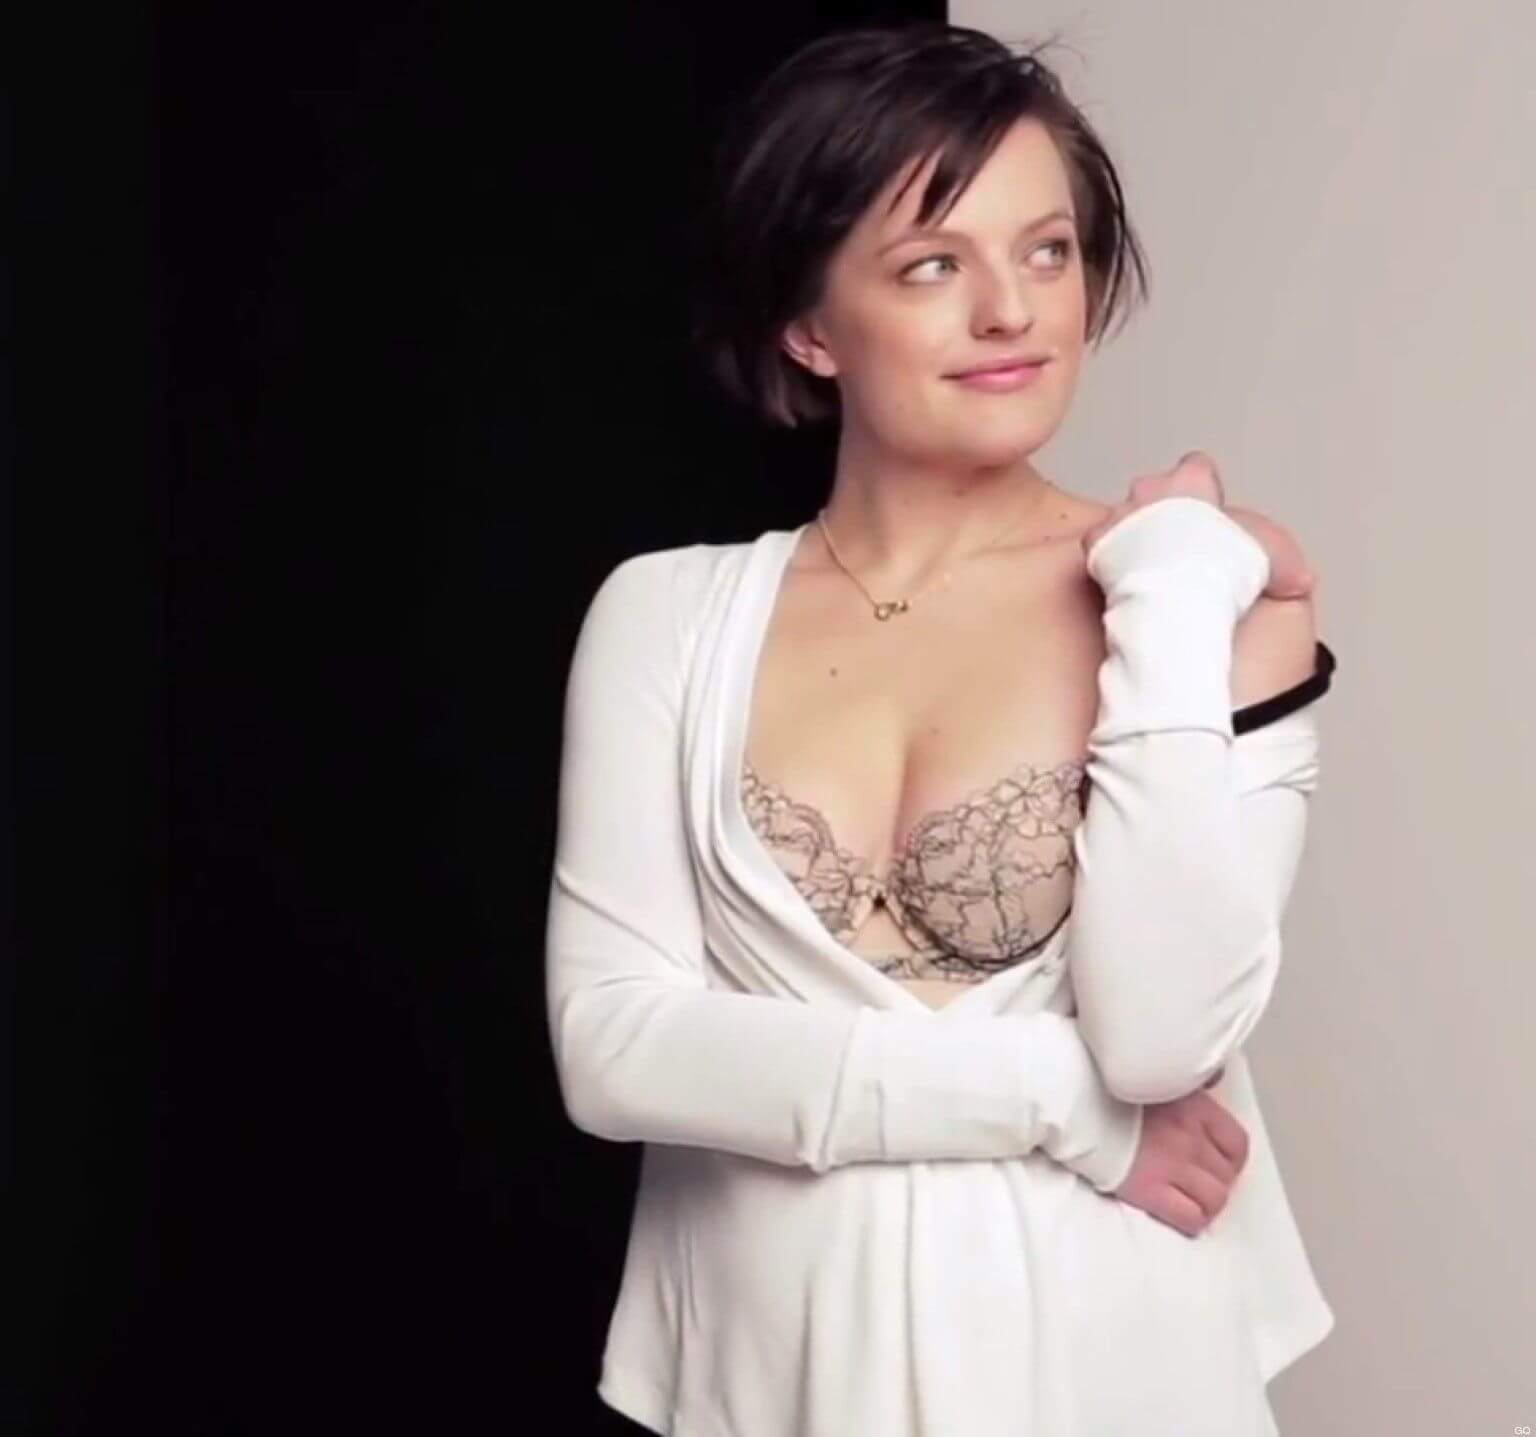 elisabeth moss hot cleavage